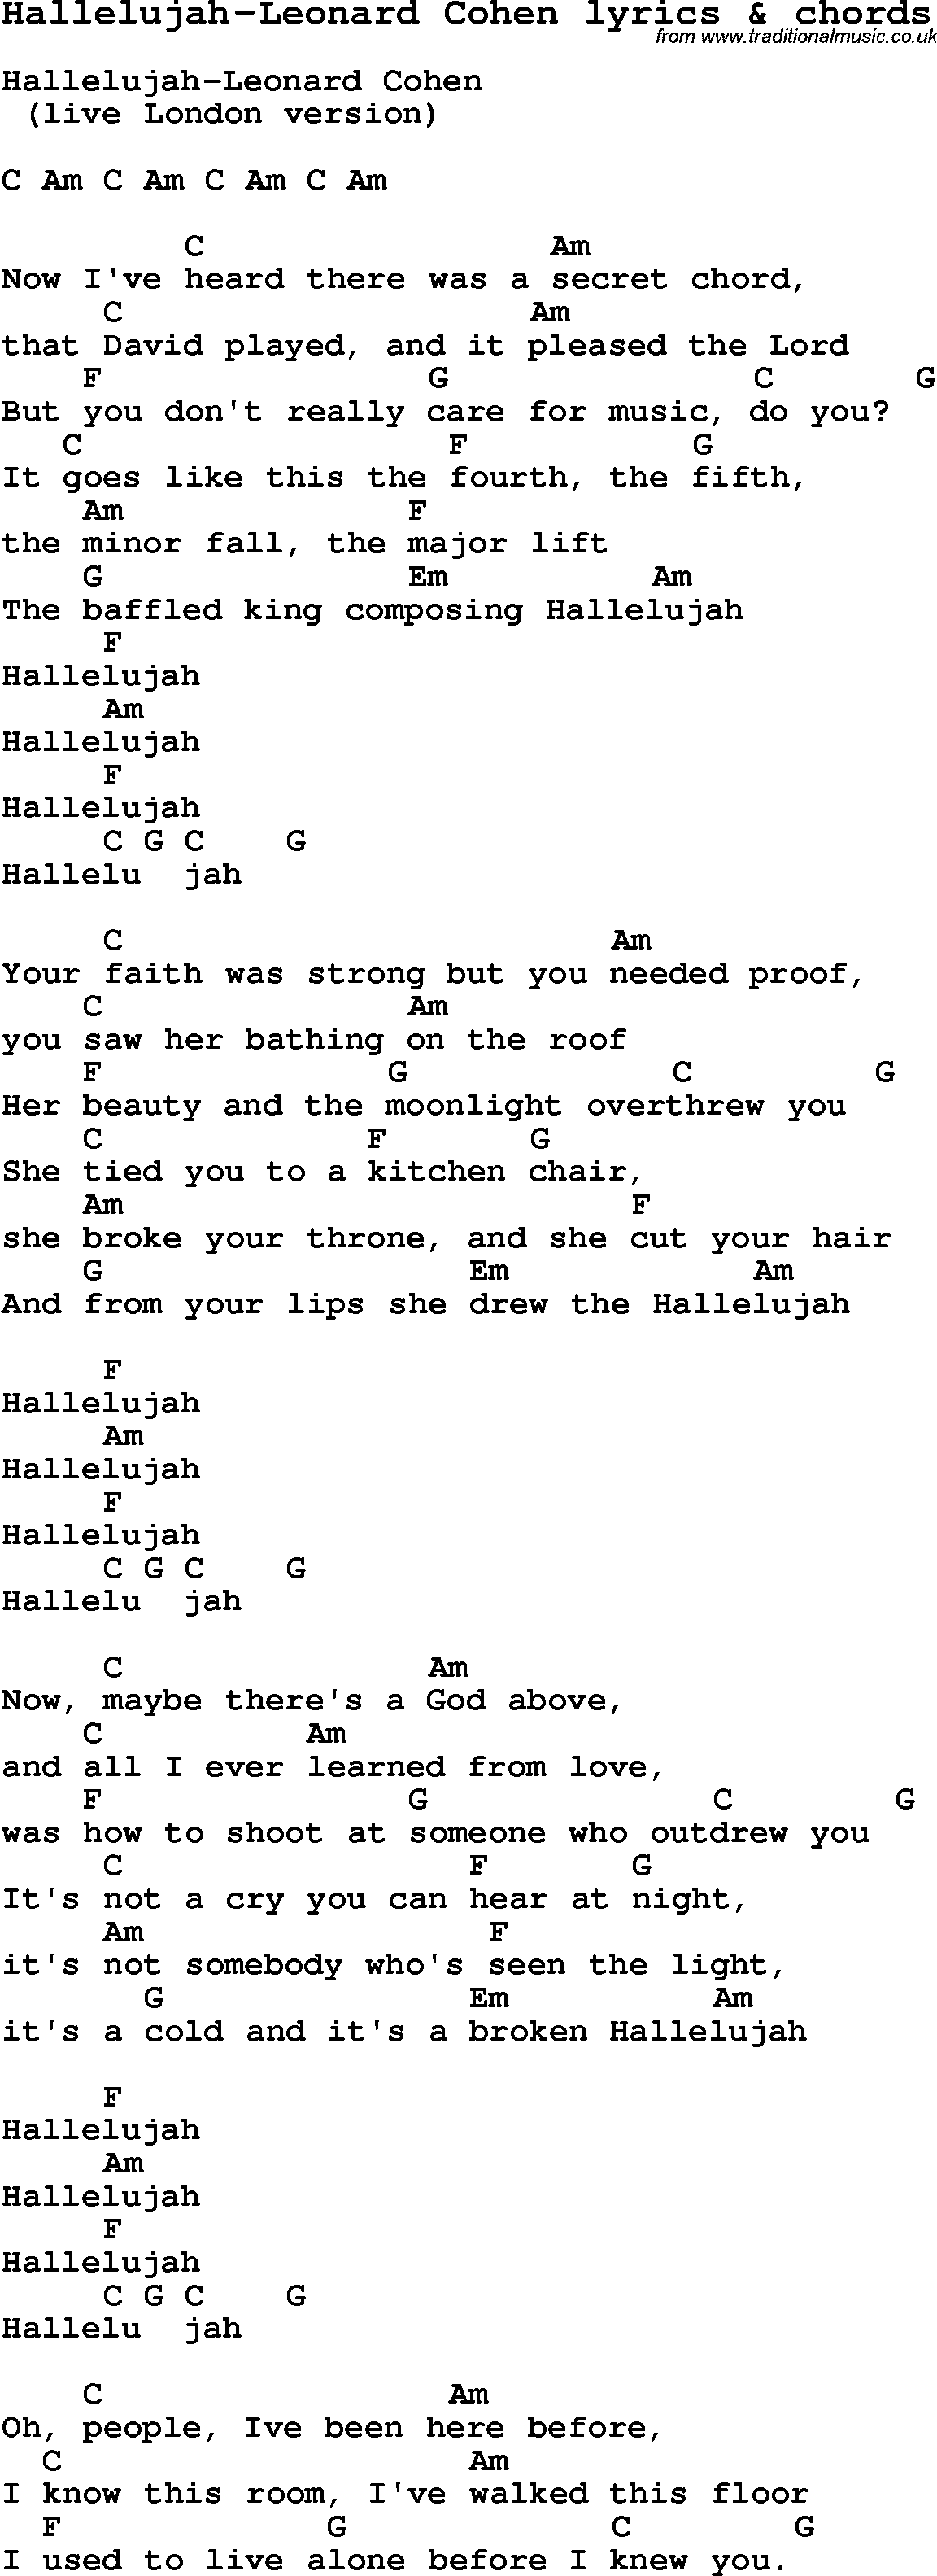 Love Song Lyrics For Hallelujah Leonard Cohen With Chords